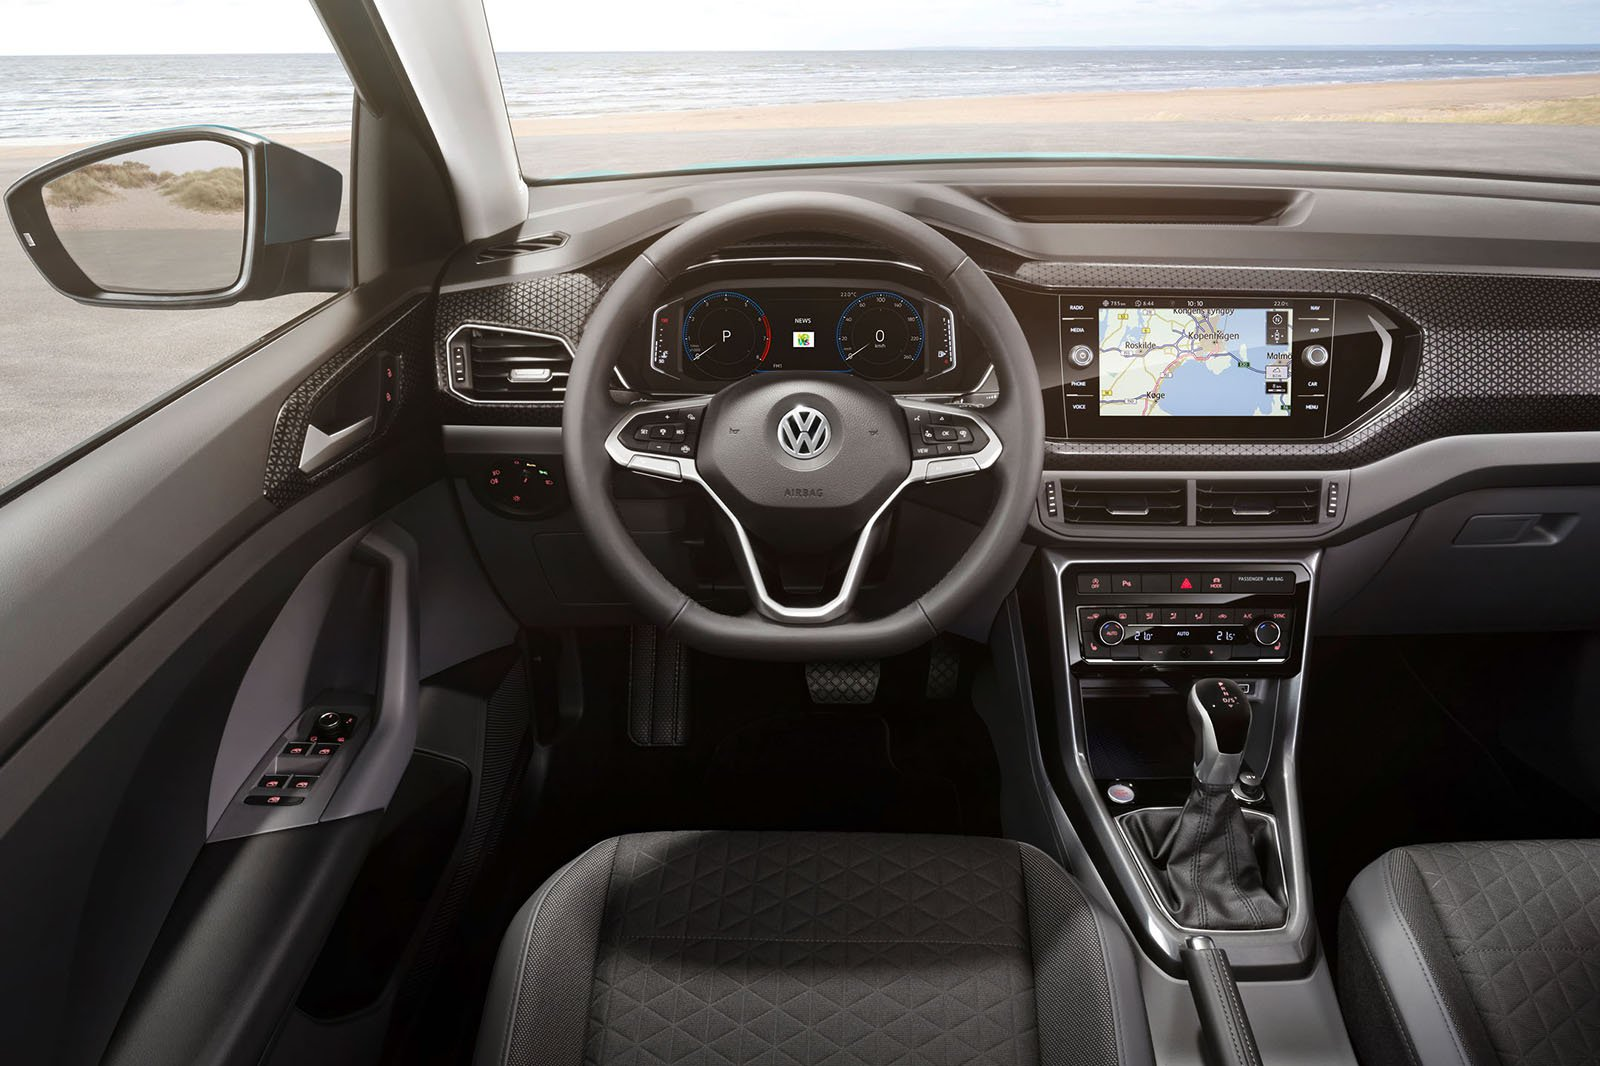 Volkswagen T-Cross interior